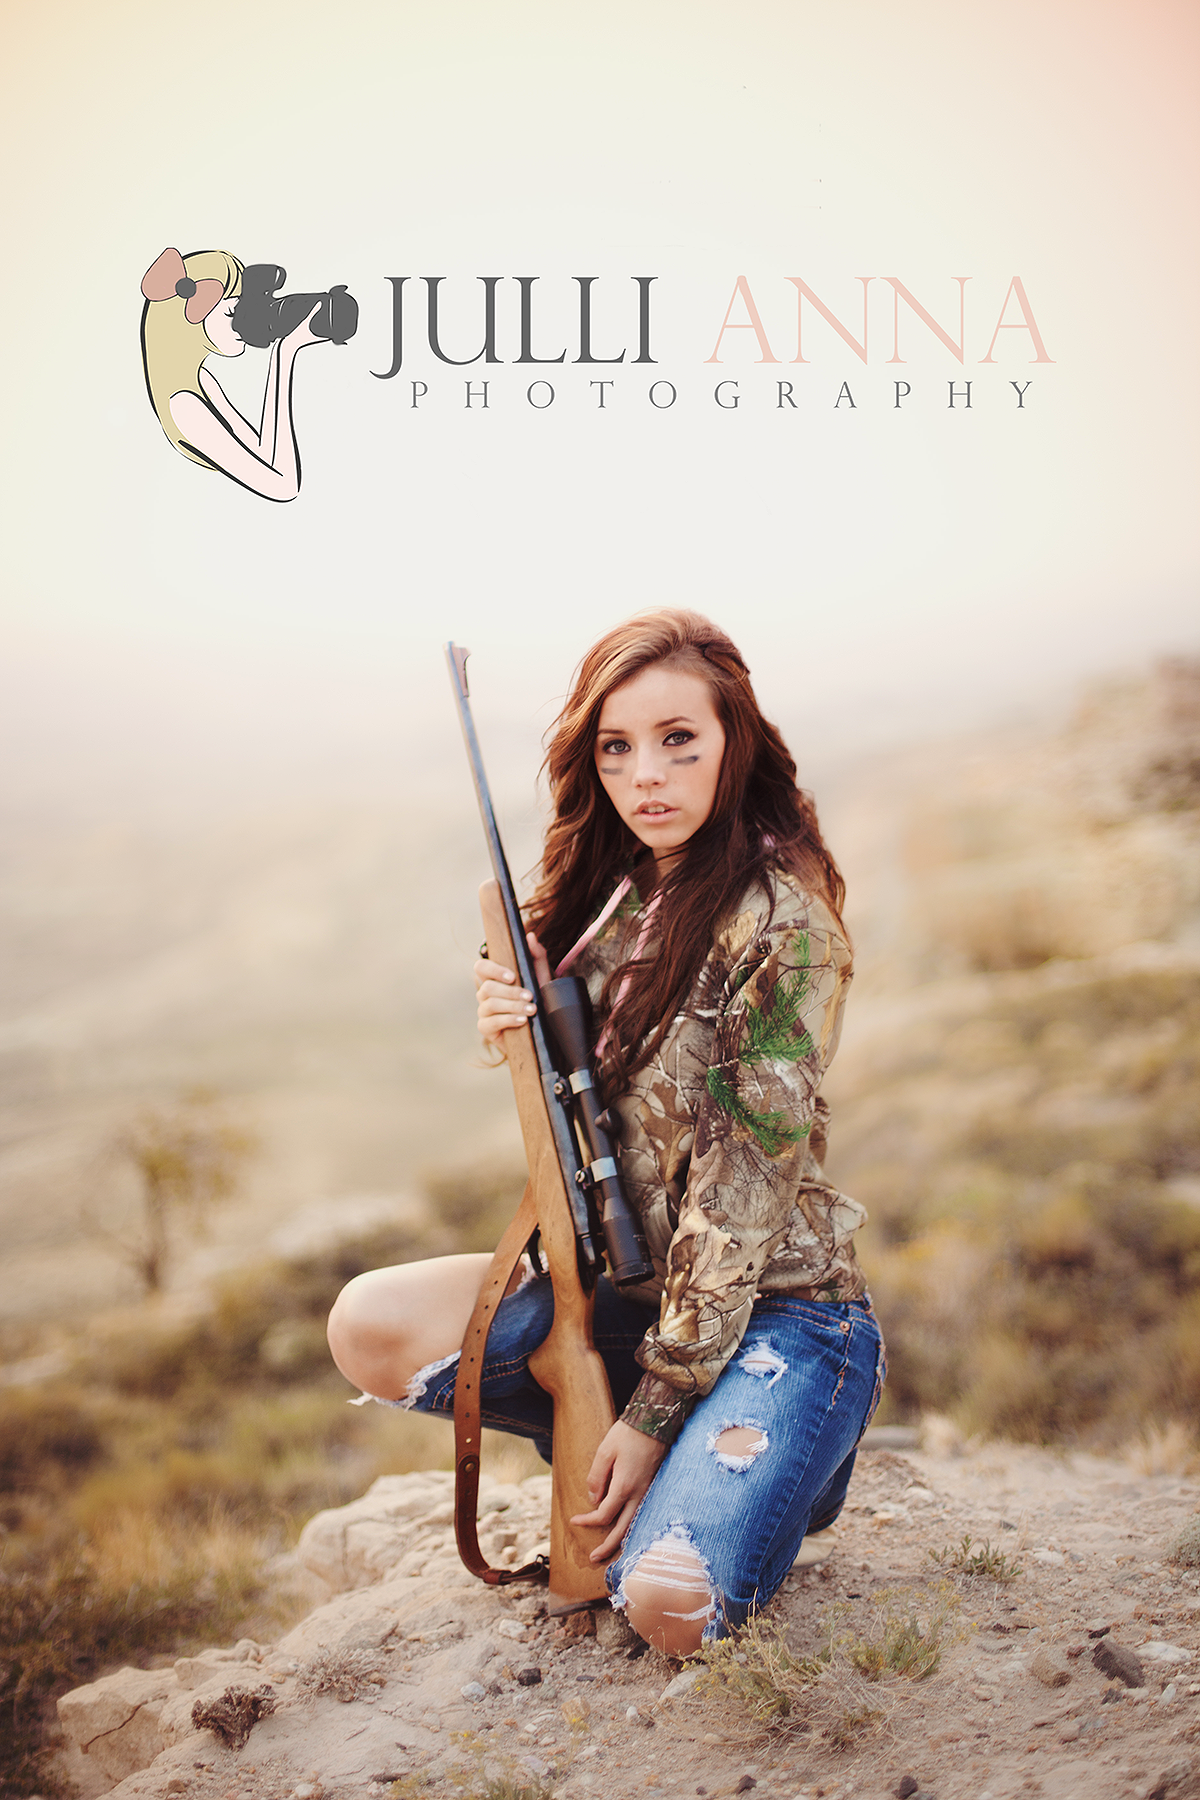 Julli Anna photography Senior Girl photography pictures ...